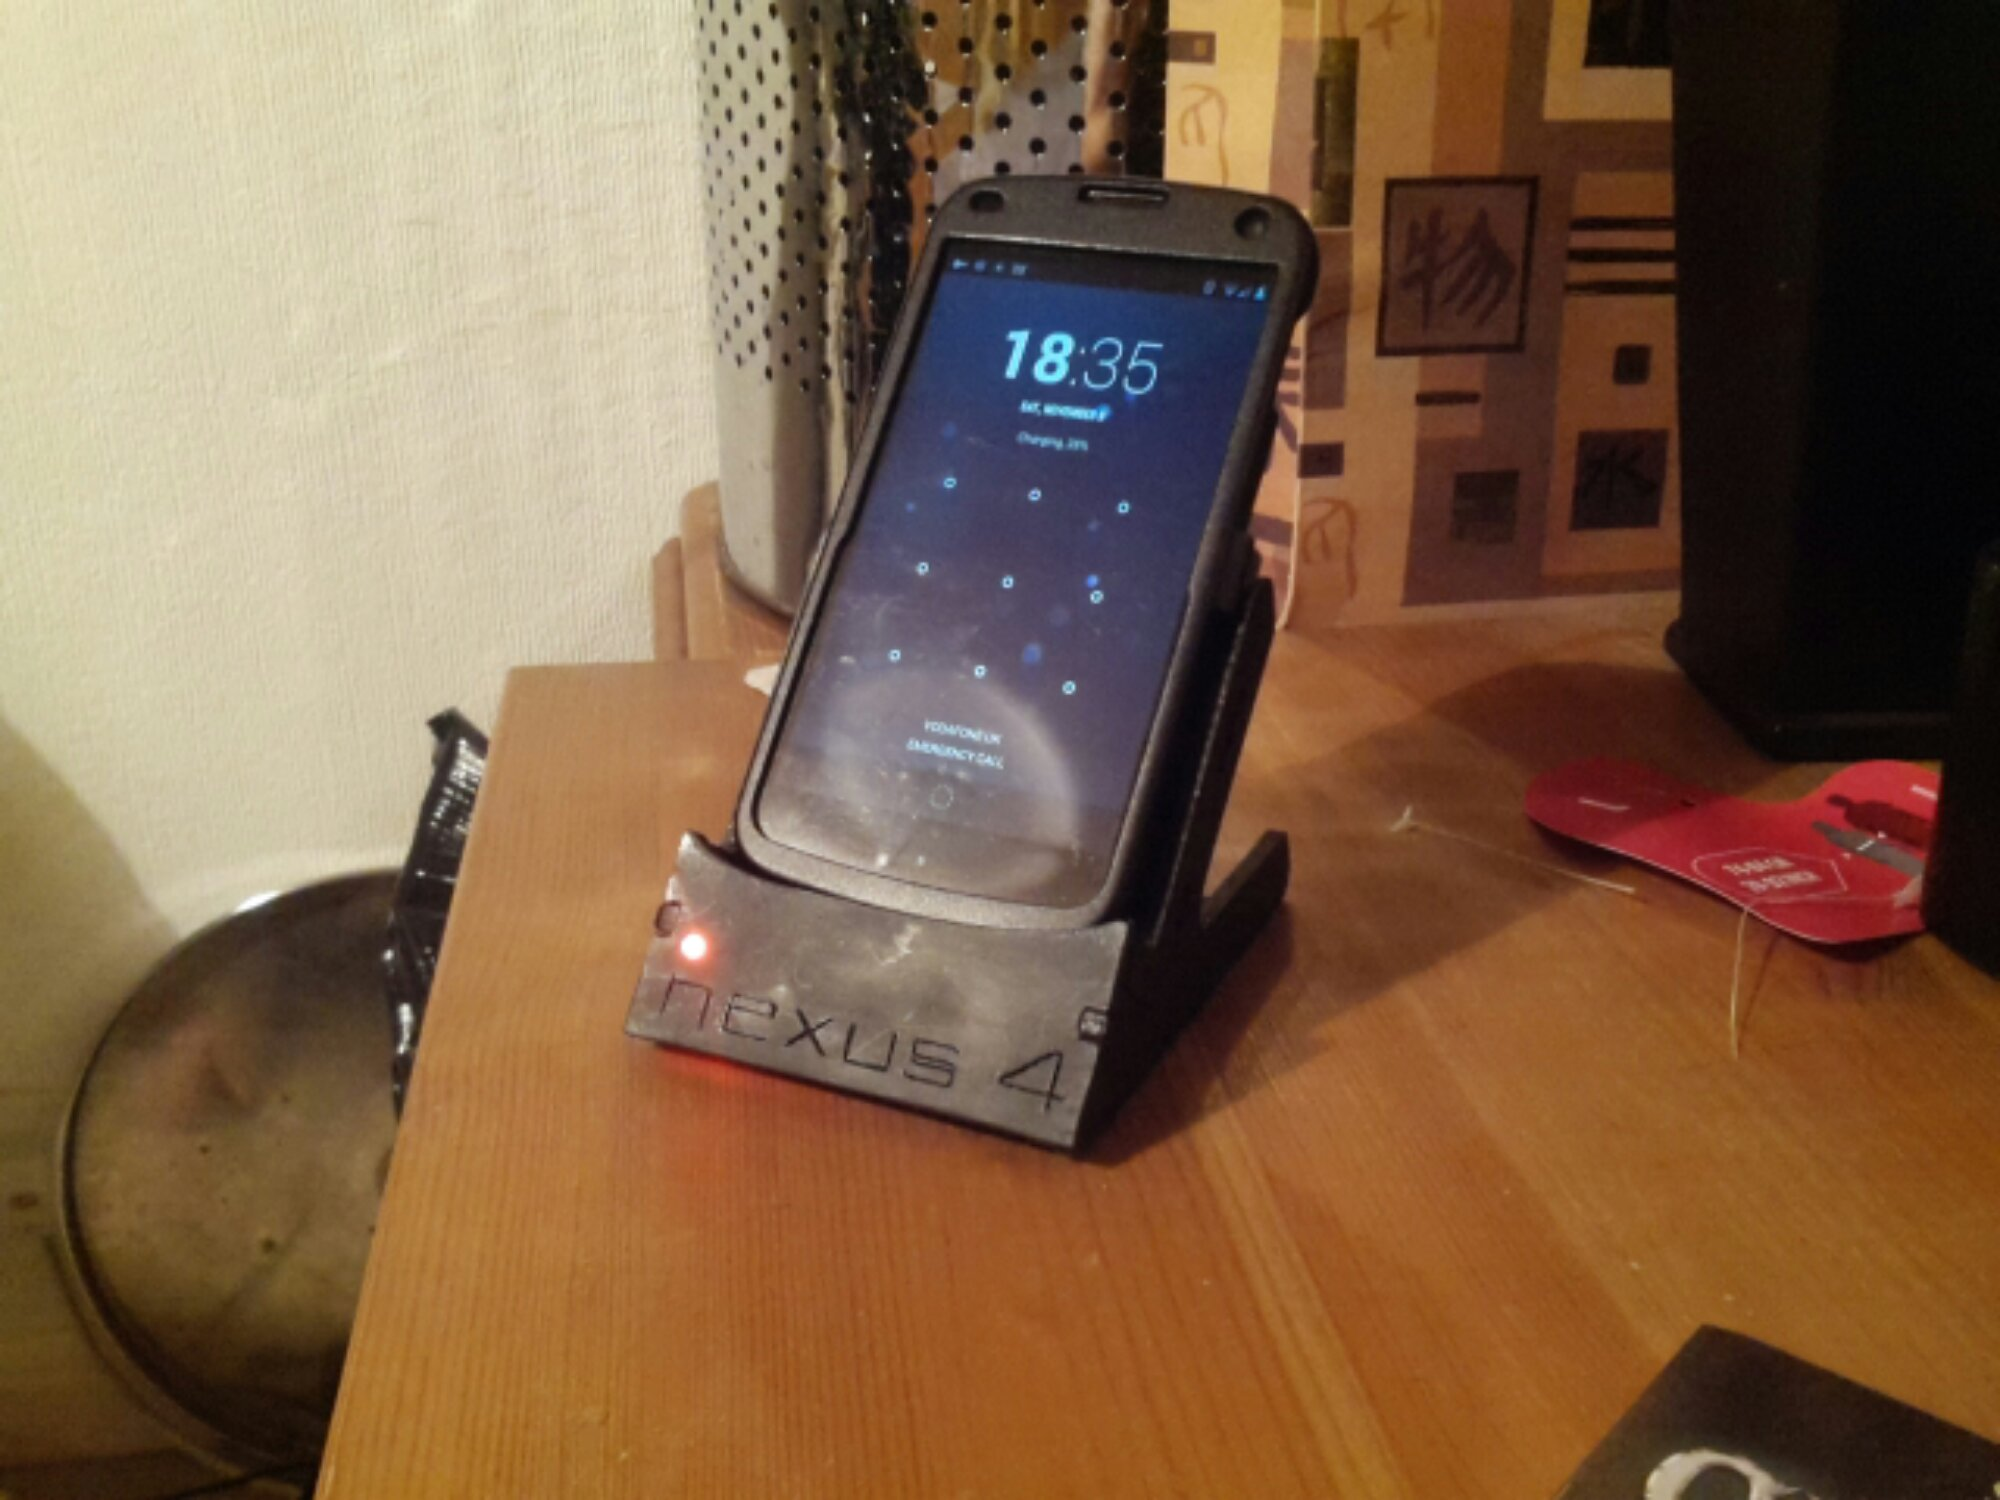 Nexus 4 in custom dock